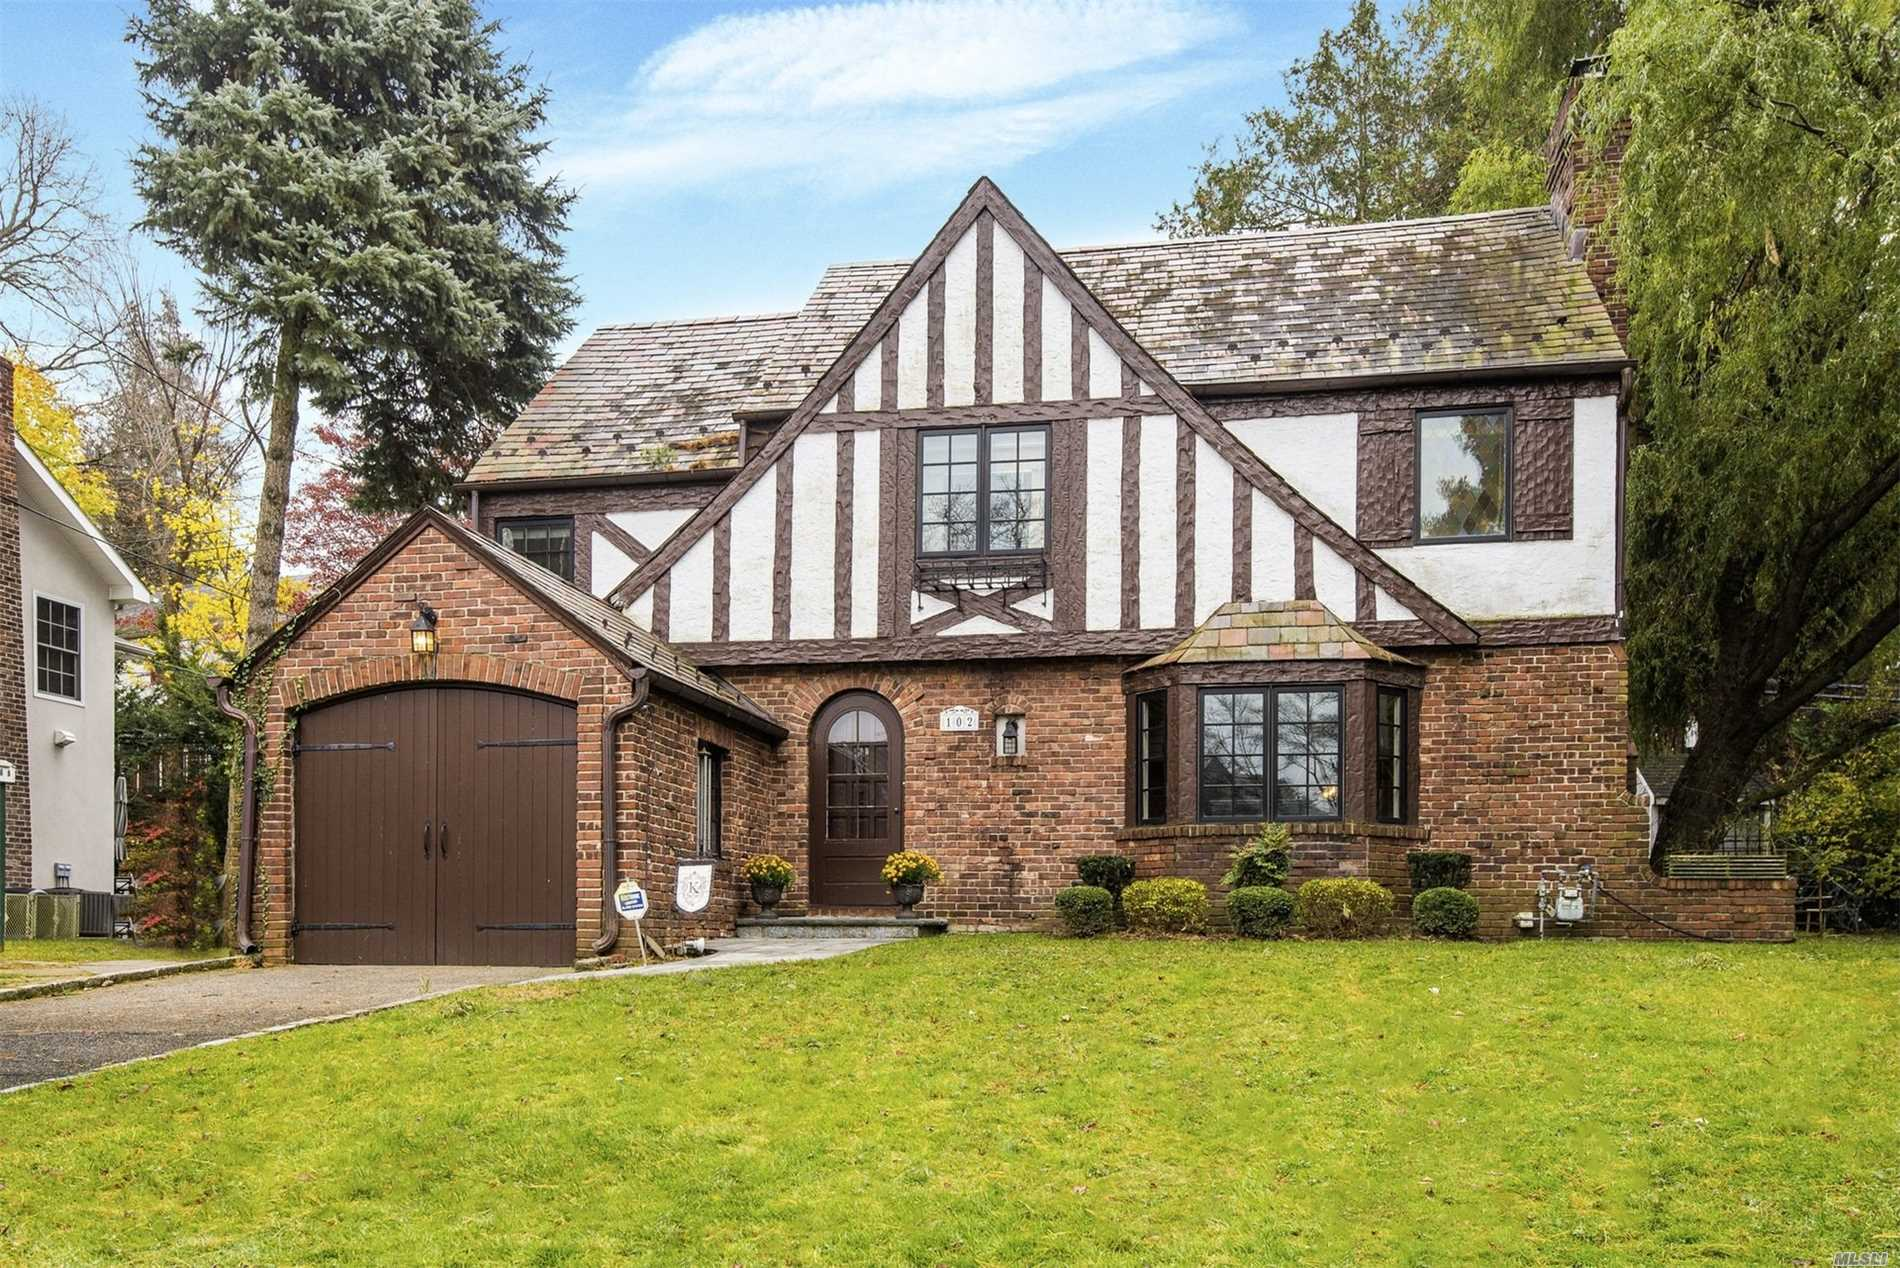 Set On A Quiet Street In South Strathmore, This Charming Meticulous Tudor Offers 4 Bedrooms, 2.5 Baths. Full Basement, Central Vacuum, New Blue Stone Patio W/Built-In Fire Pit. New Slate Roof, New Baths, Energy Efficient Marvin Windows. Munsey Park Elementary, Manhasset Middle/High Schools.